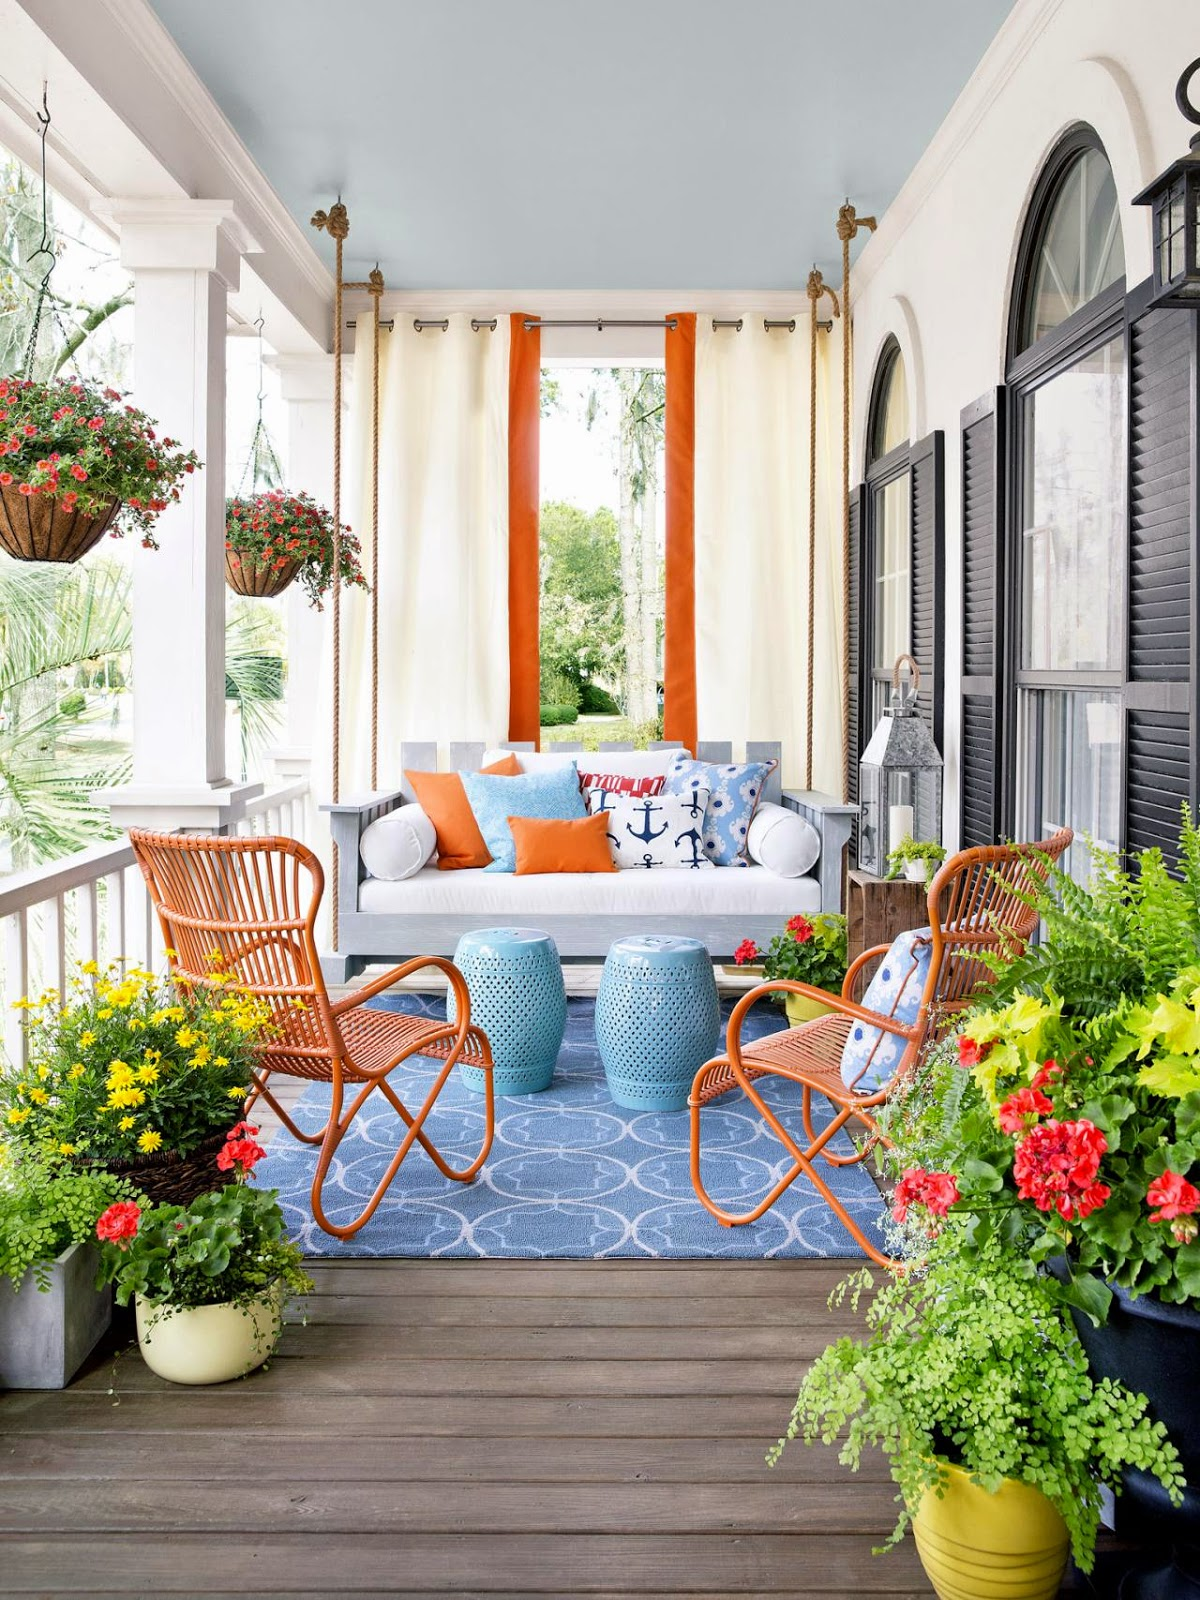 this setting combines potted plants with rustic furnishings to create an outdoor living room charm impression living room lighting ideas